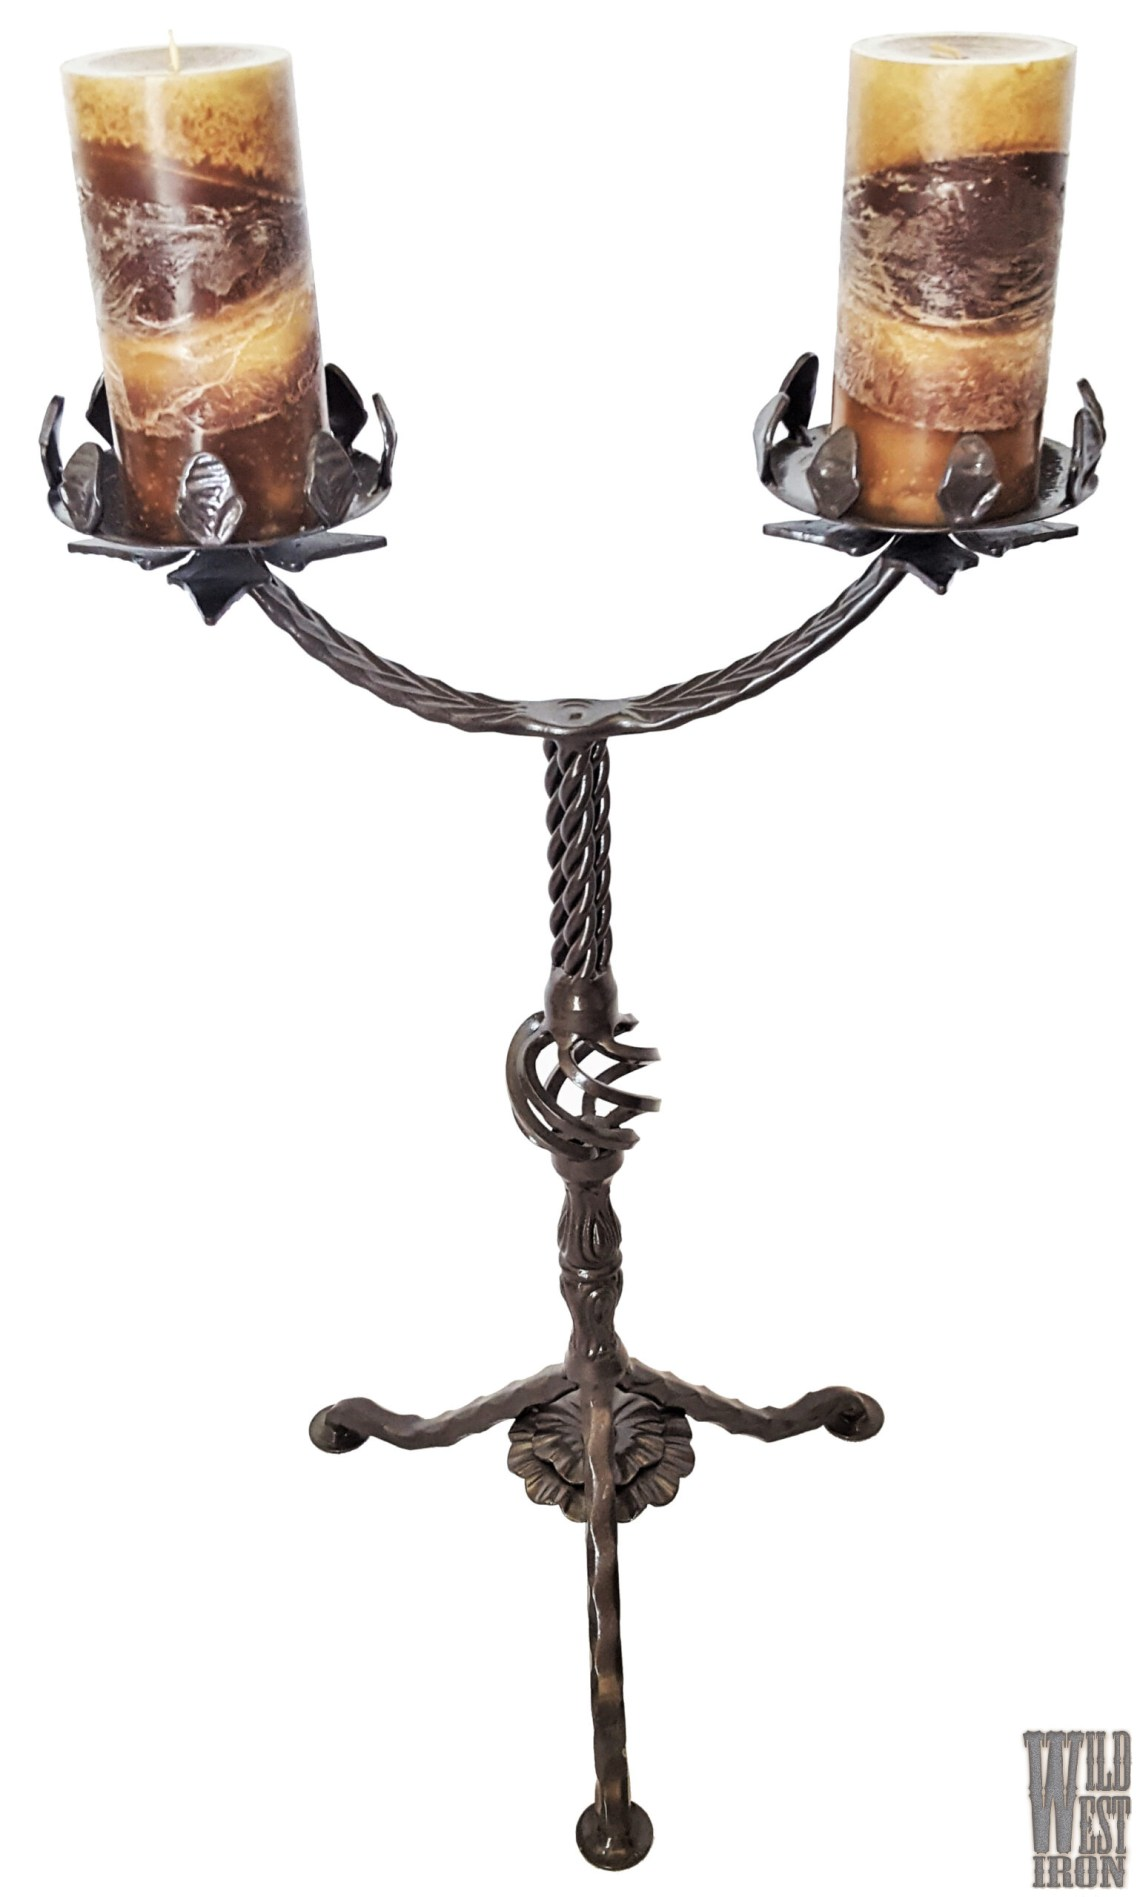 Dual Candle Holder View Two